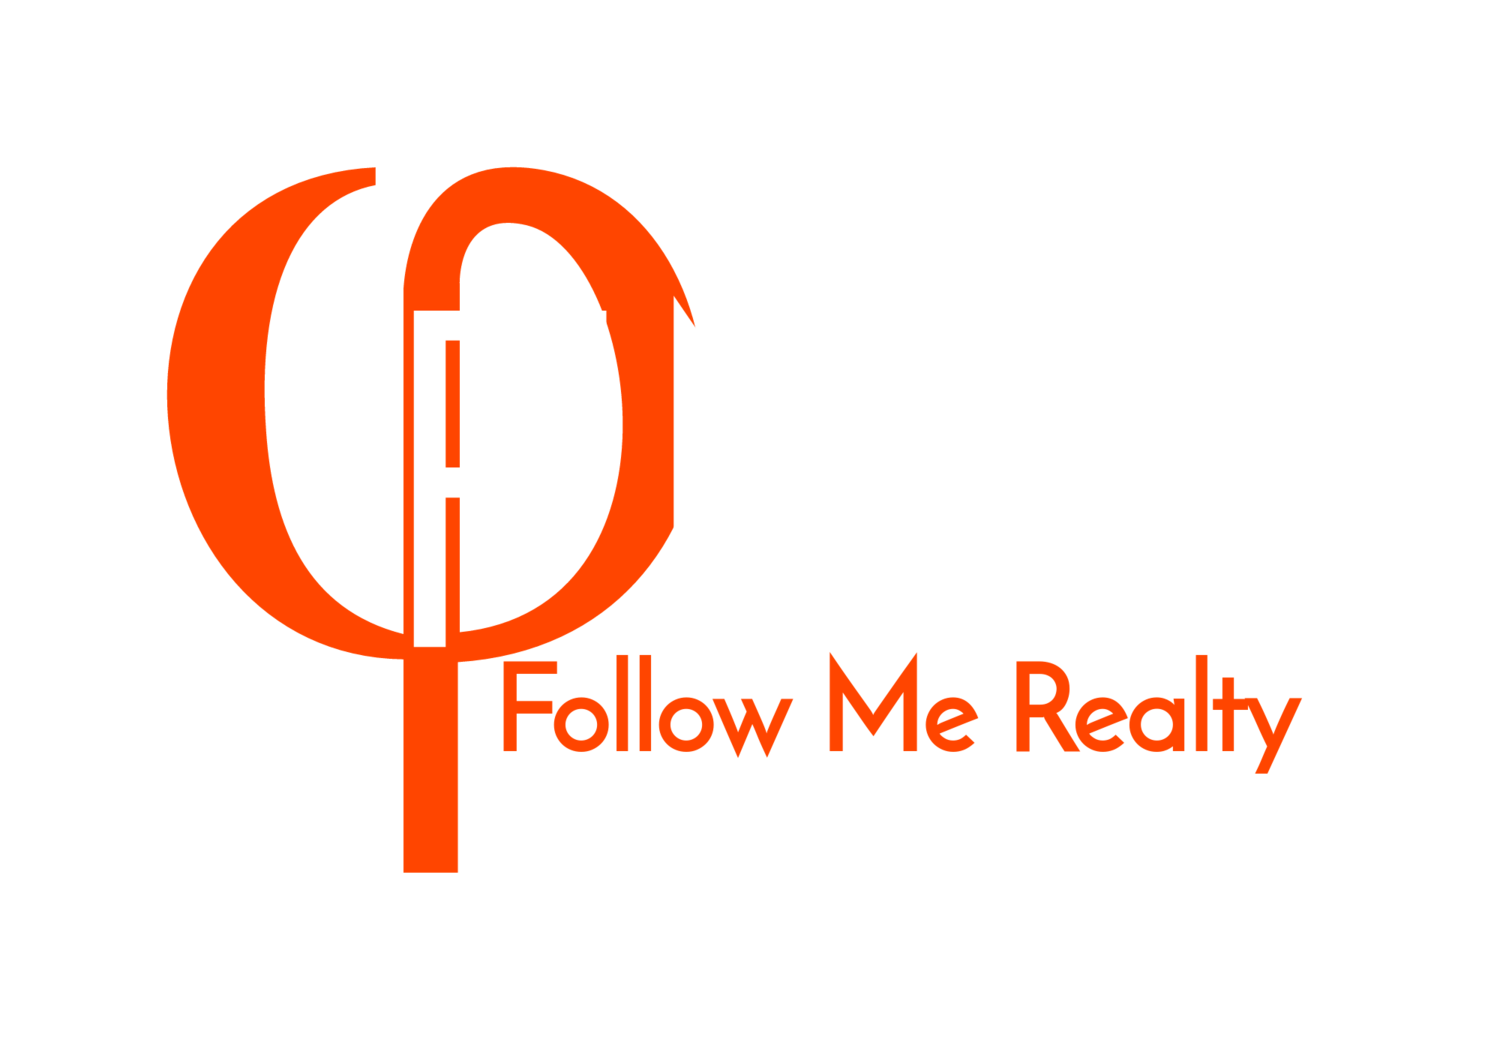 Follow Me Realty  a real estate brokerage for new agents